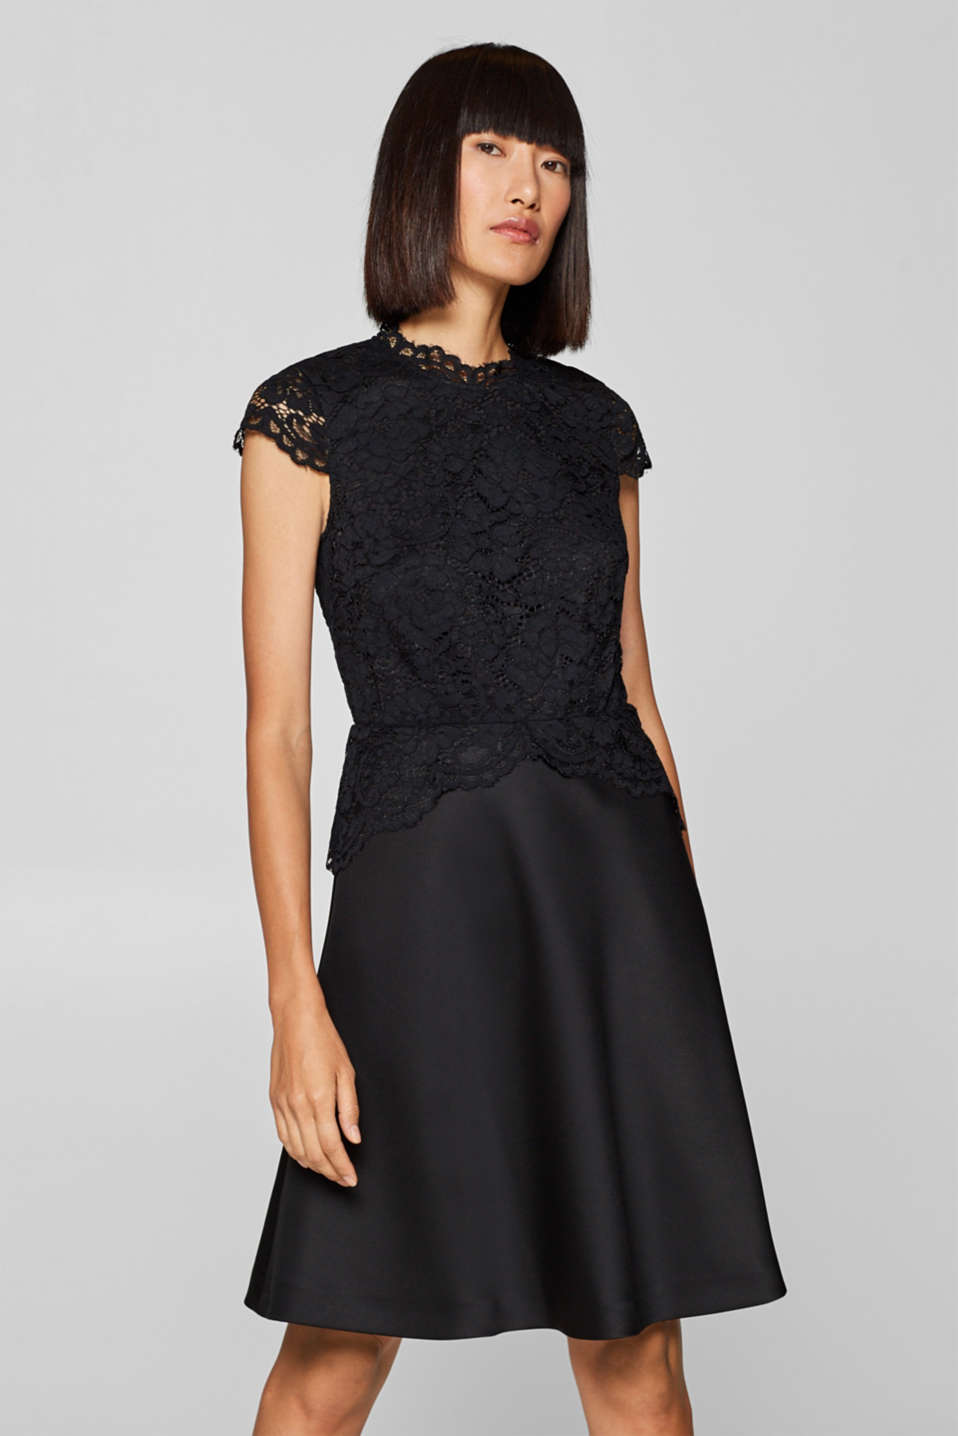 Esprit - Dress in delicate lace and firm jersey